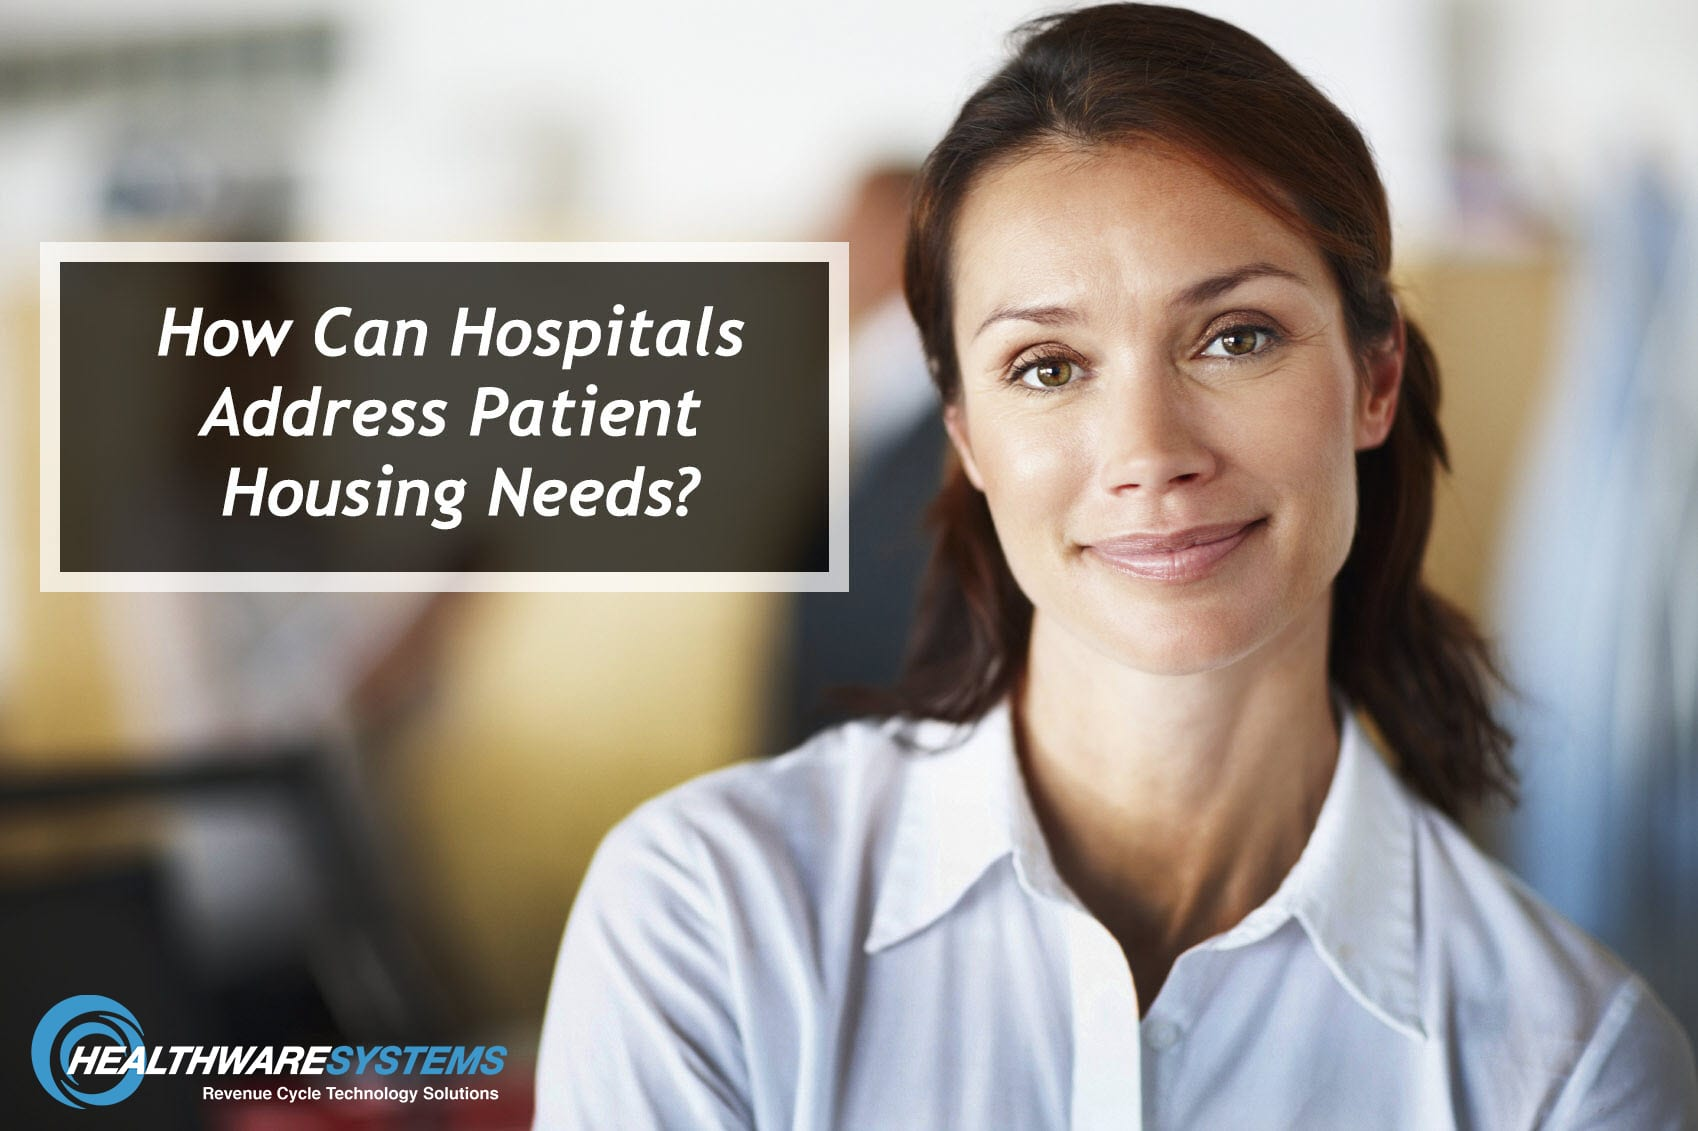 A healthcare worker and the blog title appear: How Can Hospitals Address Patient Housing Needs?